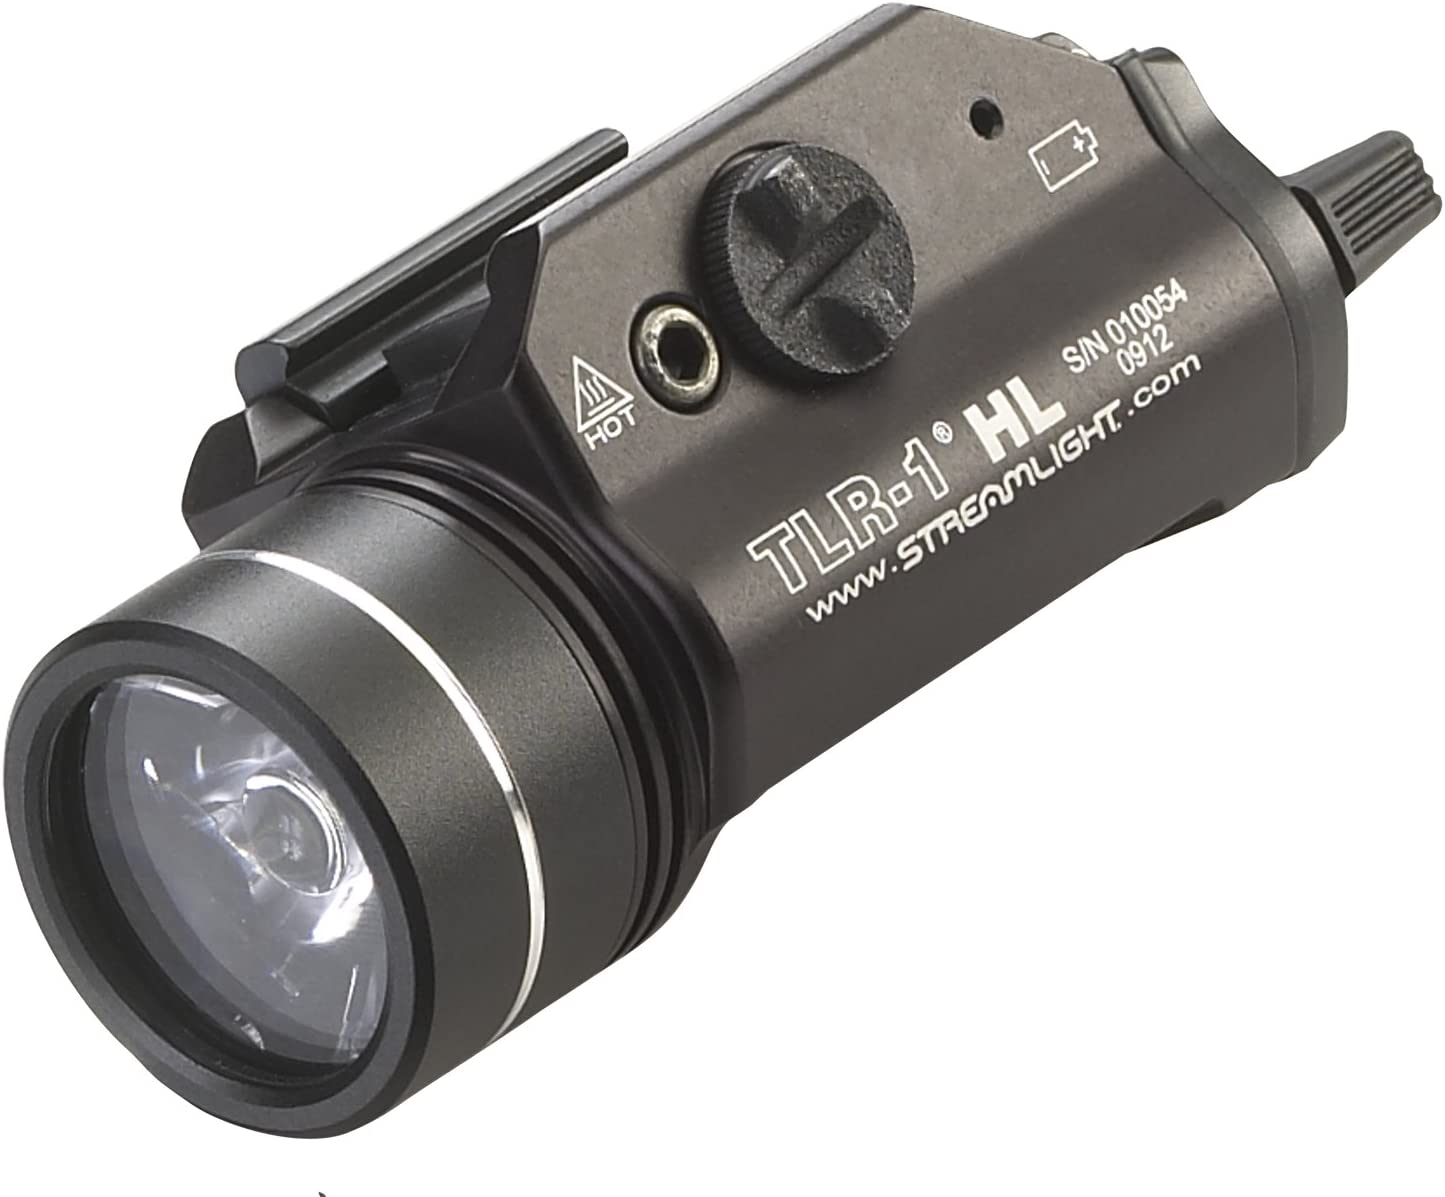 This is an image of a shotgun light in black matte color. Lens facing forward.